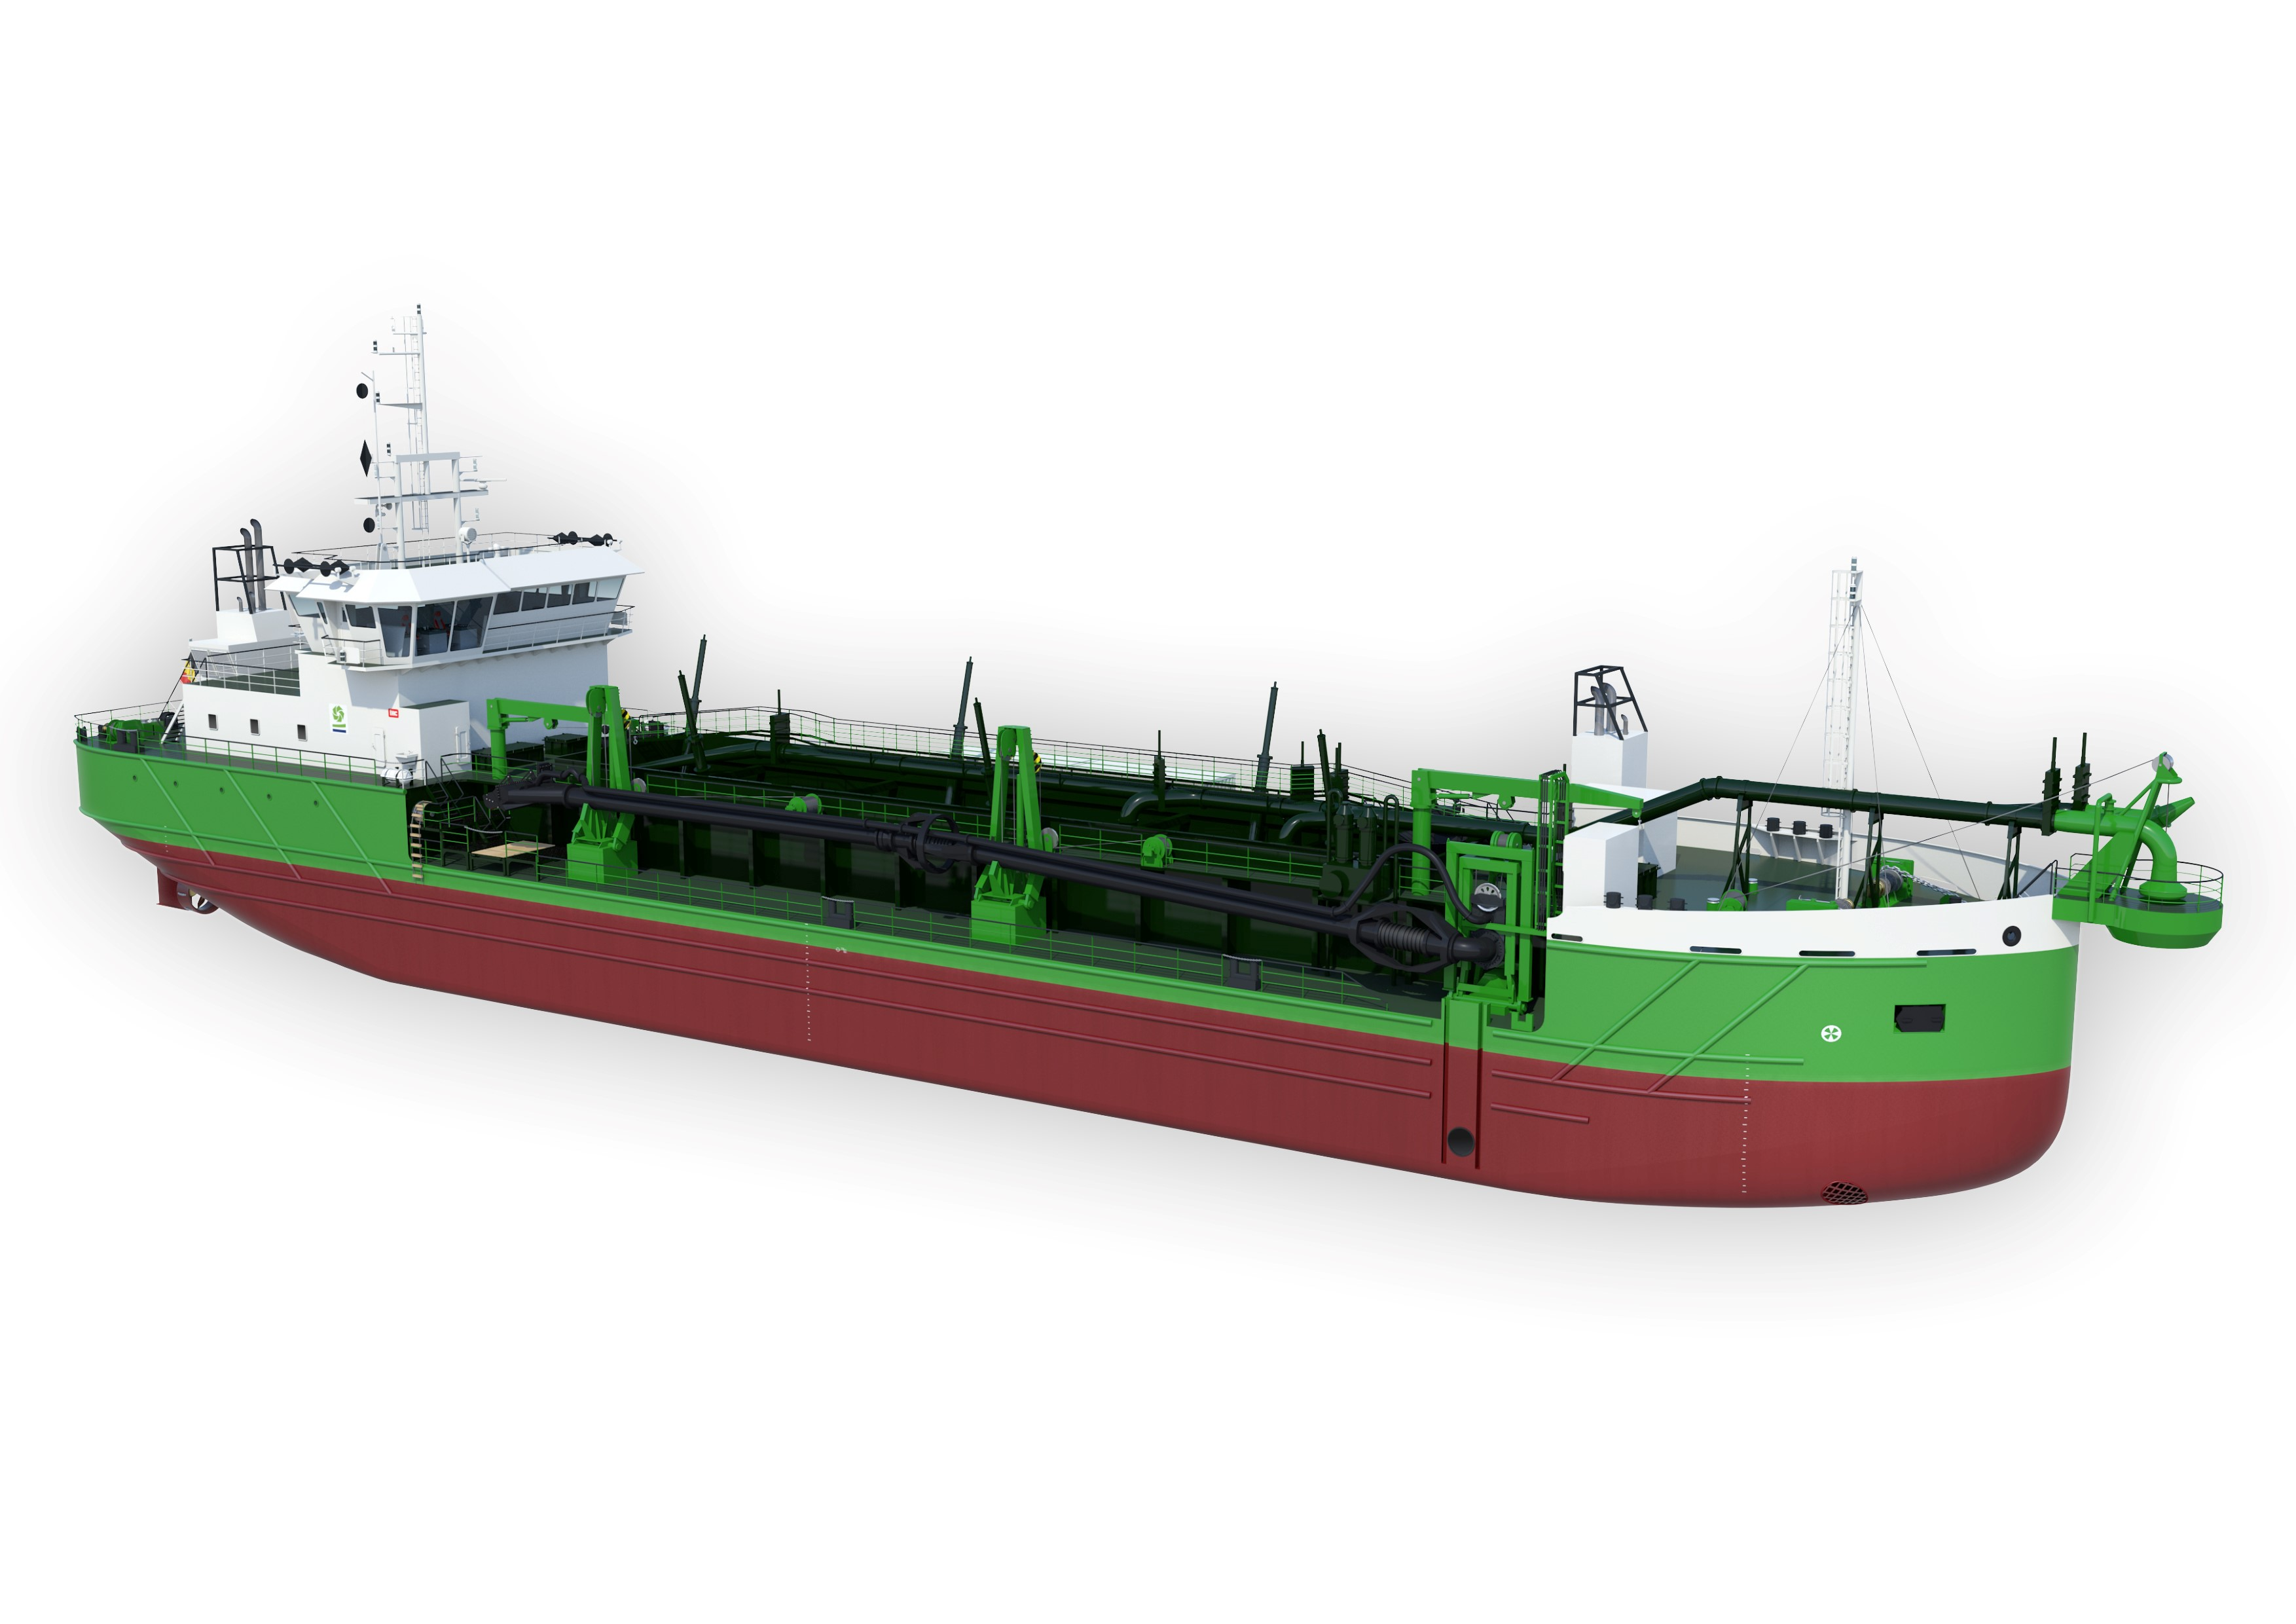 Royal IHC to Build Four New Vessels for DEME